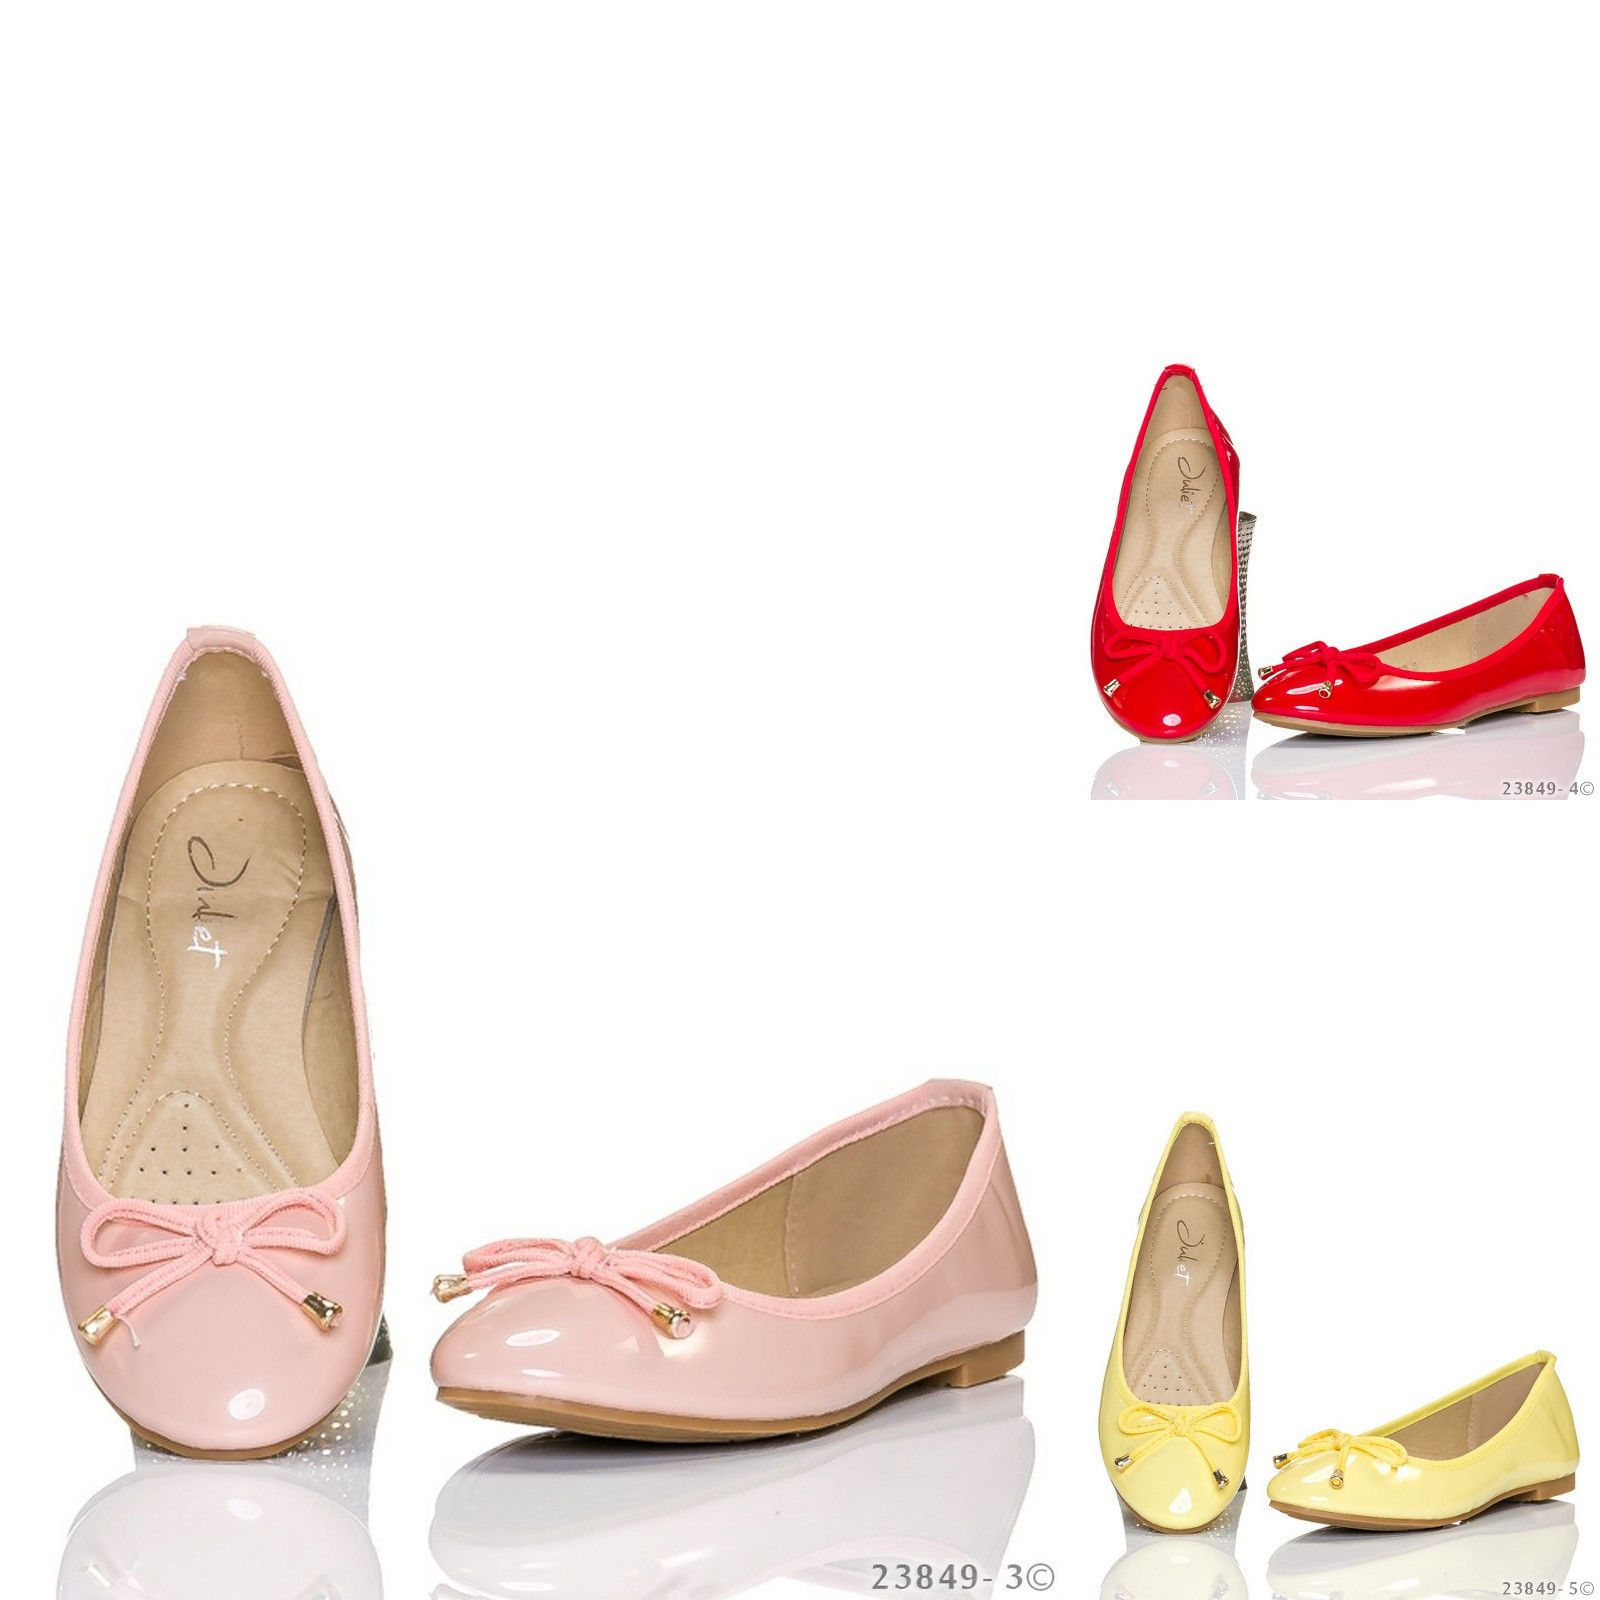 2183acc6b WOMENS LADIES PATENT LEATHER SLIP ON BOW PUMPS BALLERINA SHOES BALLET FLATS